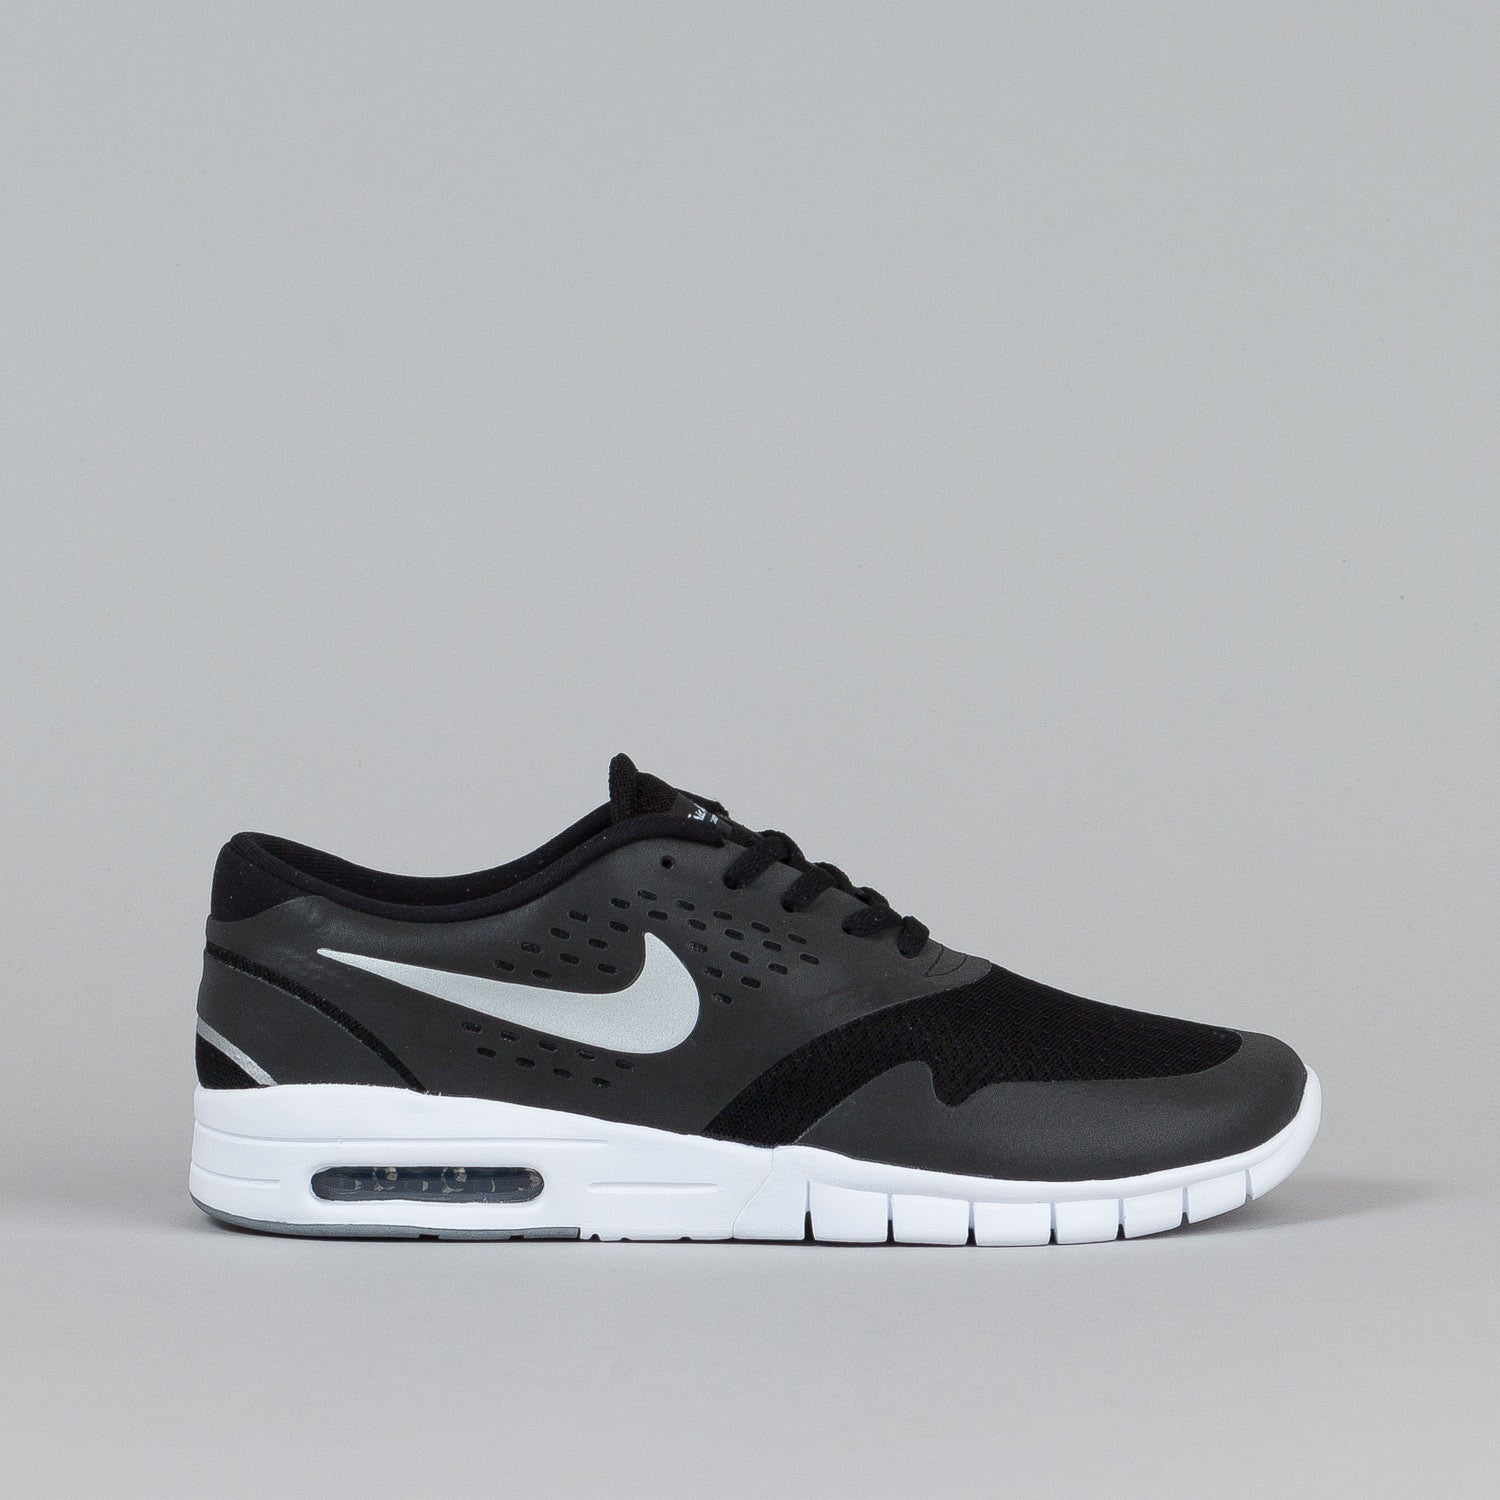 Nike Eric Koston 2 Max Black / Metallic Silver